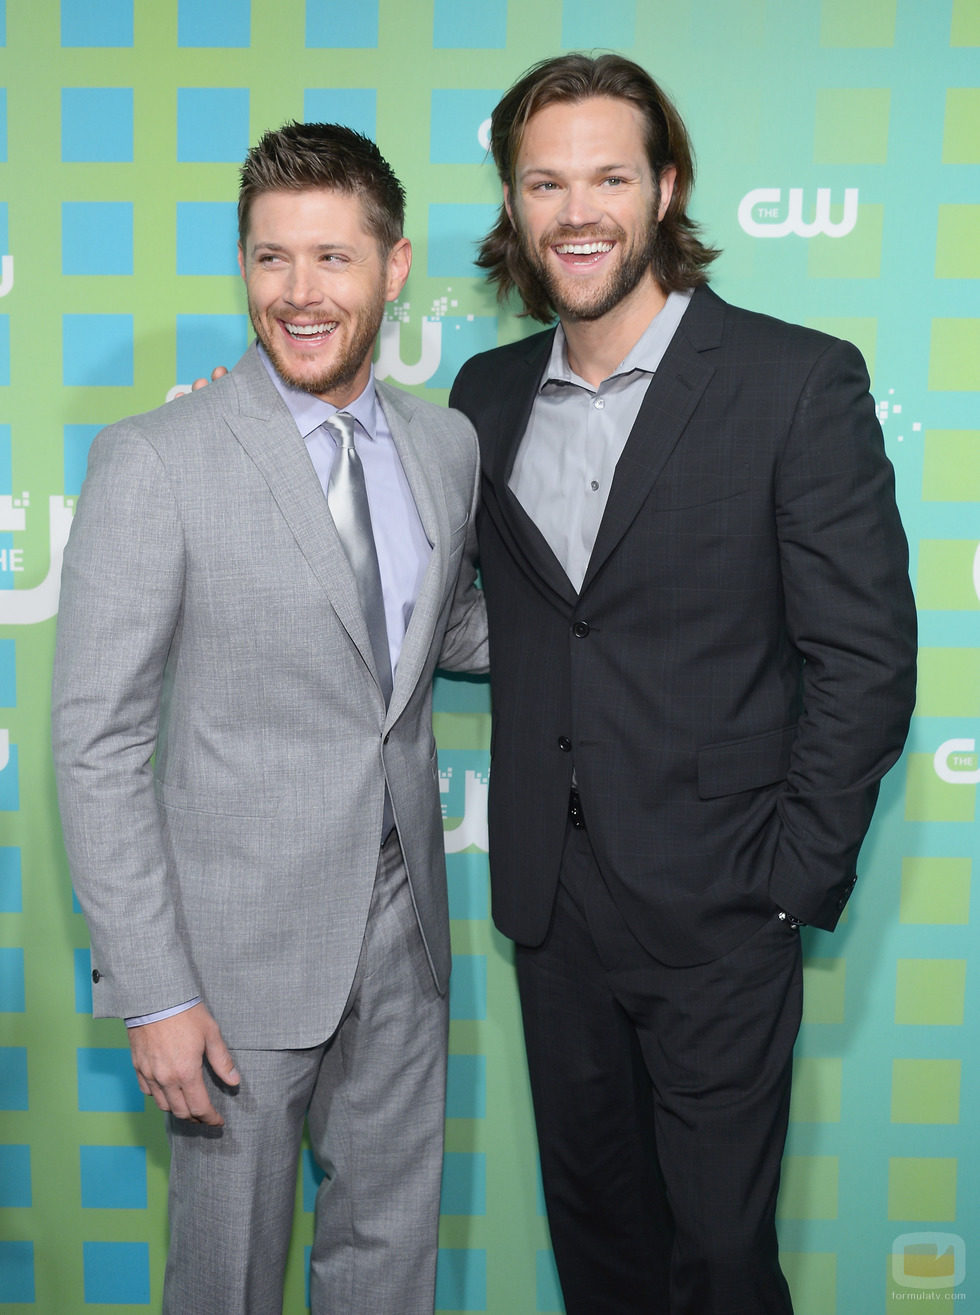 Jensen Ackles y Jared Padalecki de 'Supernatural' en los Upfronts 2012 de The CW